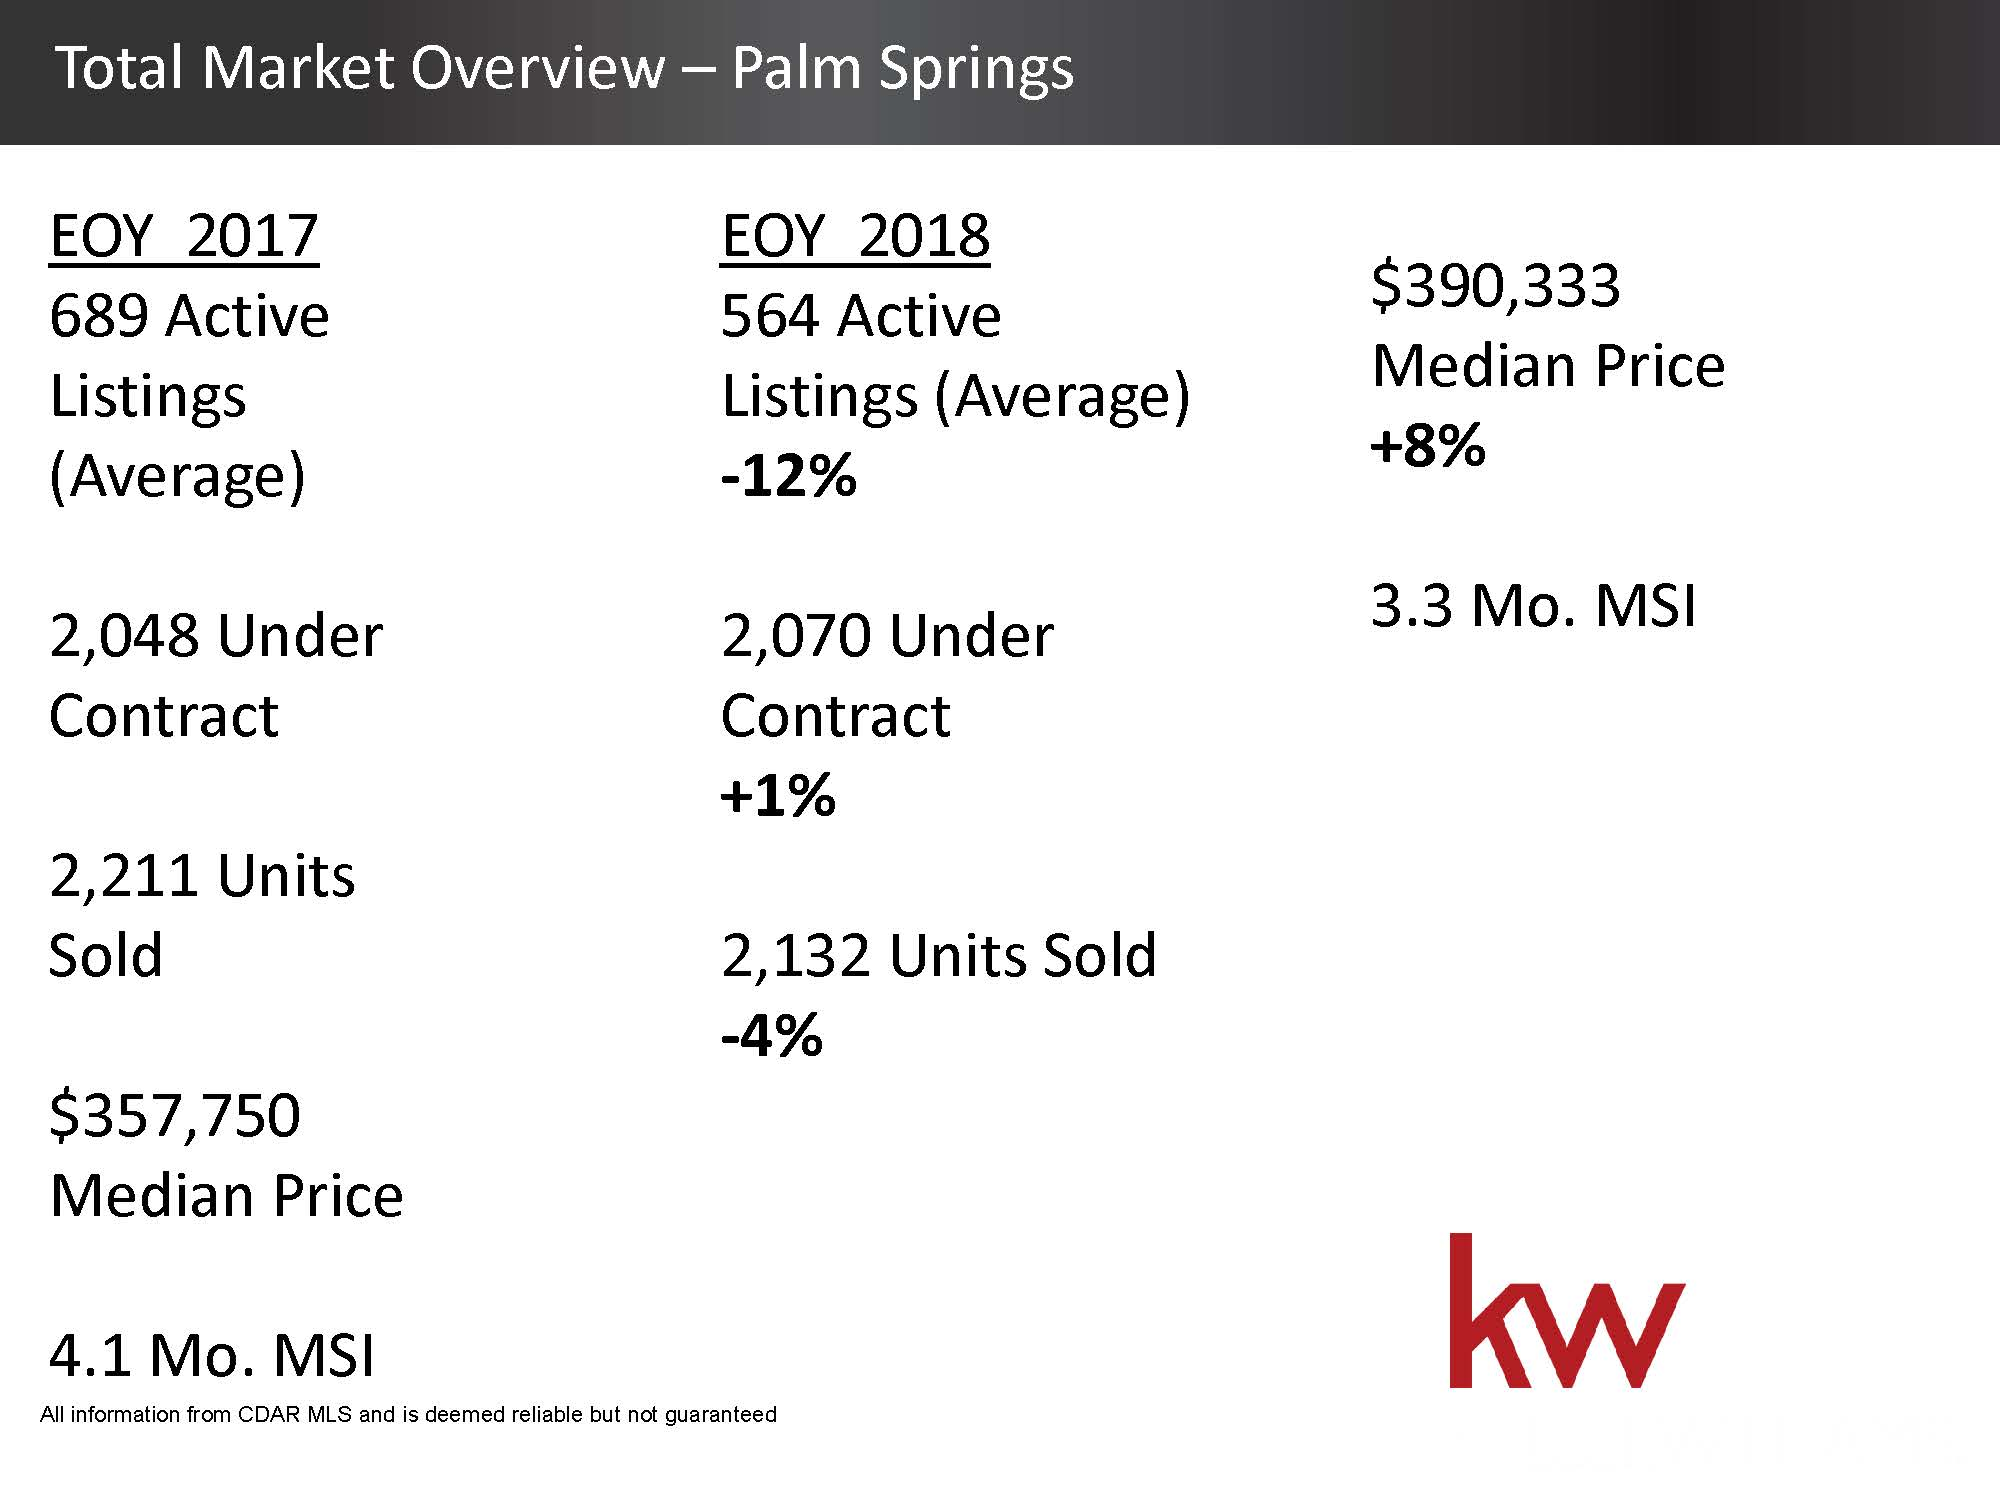 Total Housing Market 2018 Overview - Palm Springs